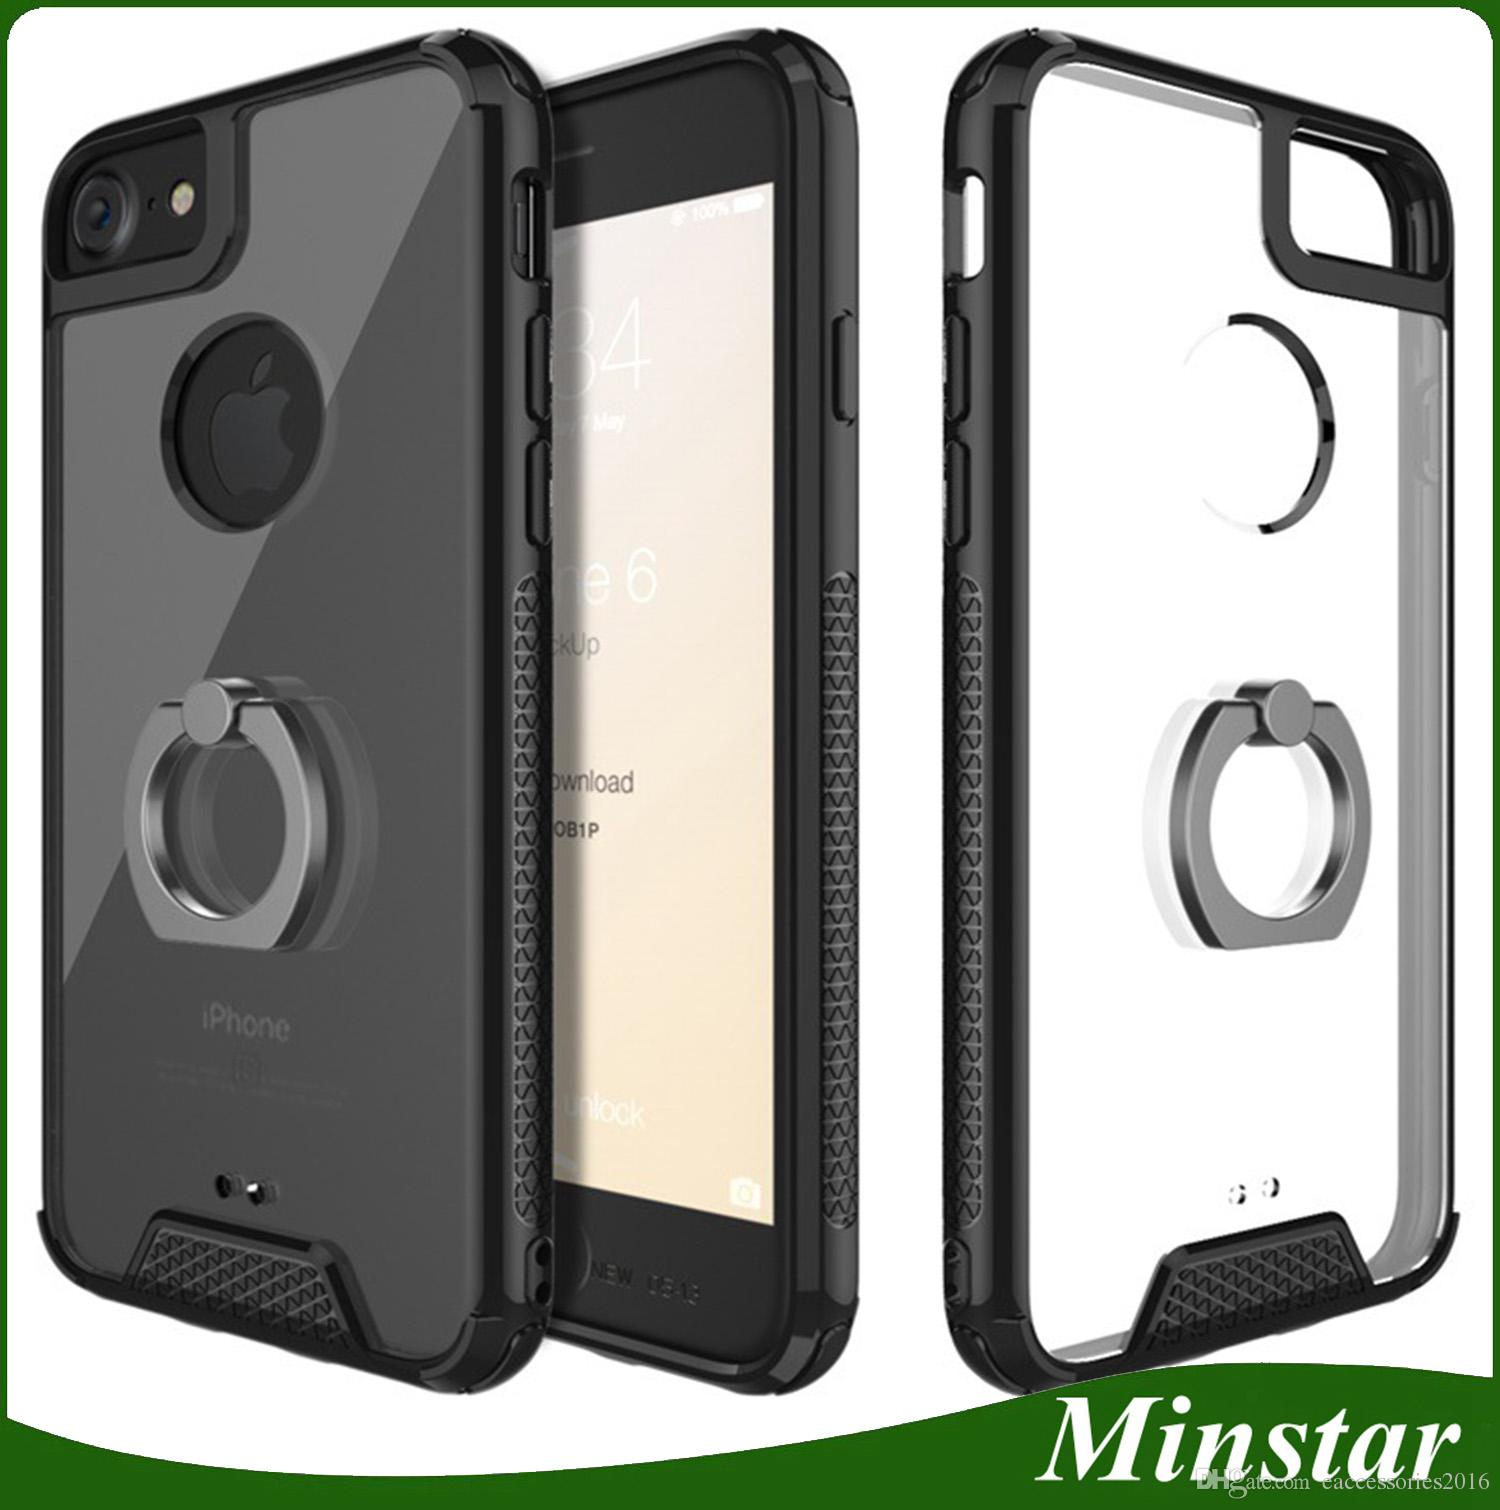 TPU Bumper Clear Tough Acrylic Ring Holder Kickstand Phone Case Hand Grip Cover for Huawei P10 Plus P9 Plus Honor P8 Lite Mate 9 Plus Mate 9 Plus Case